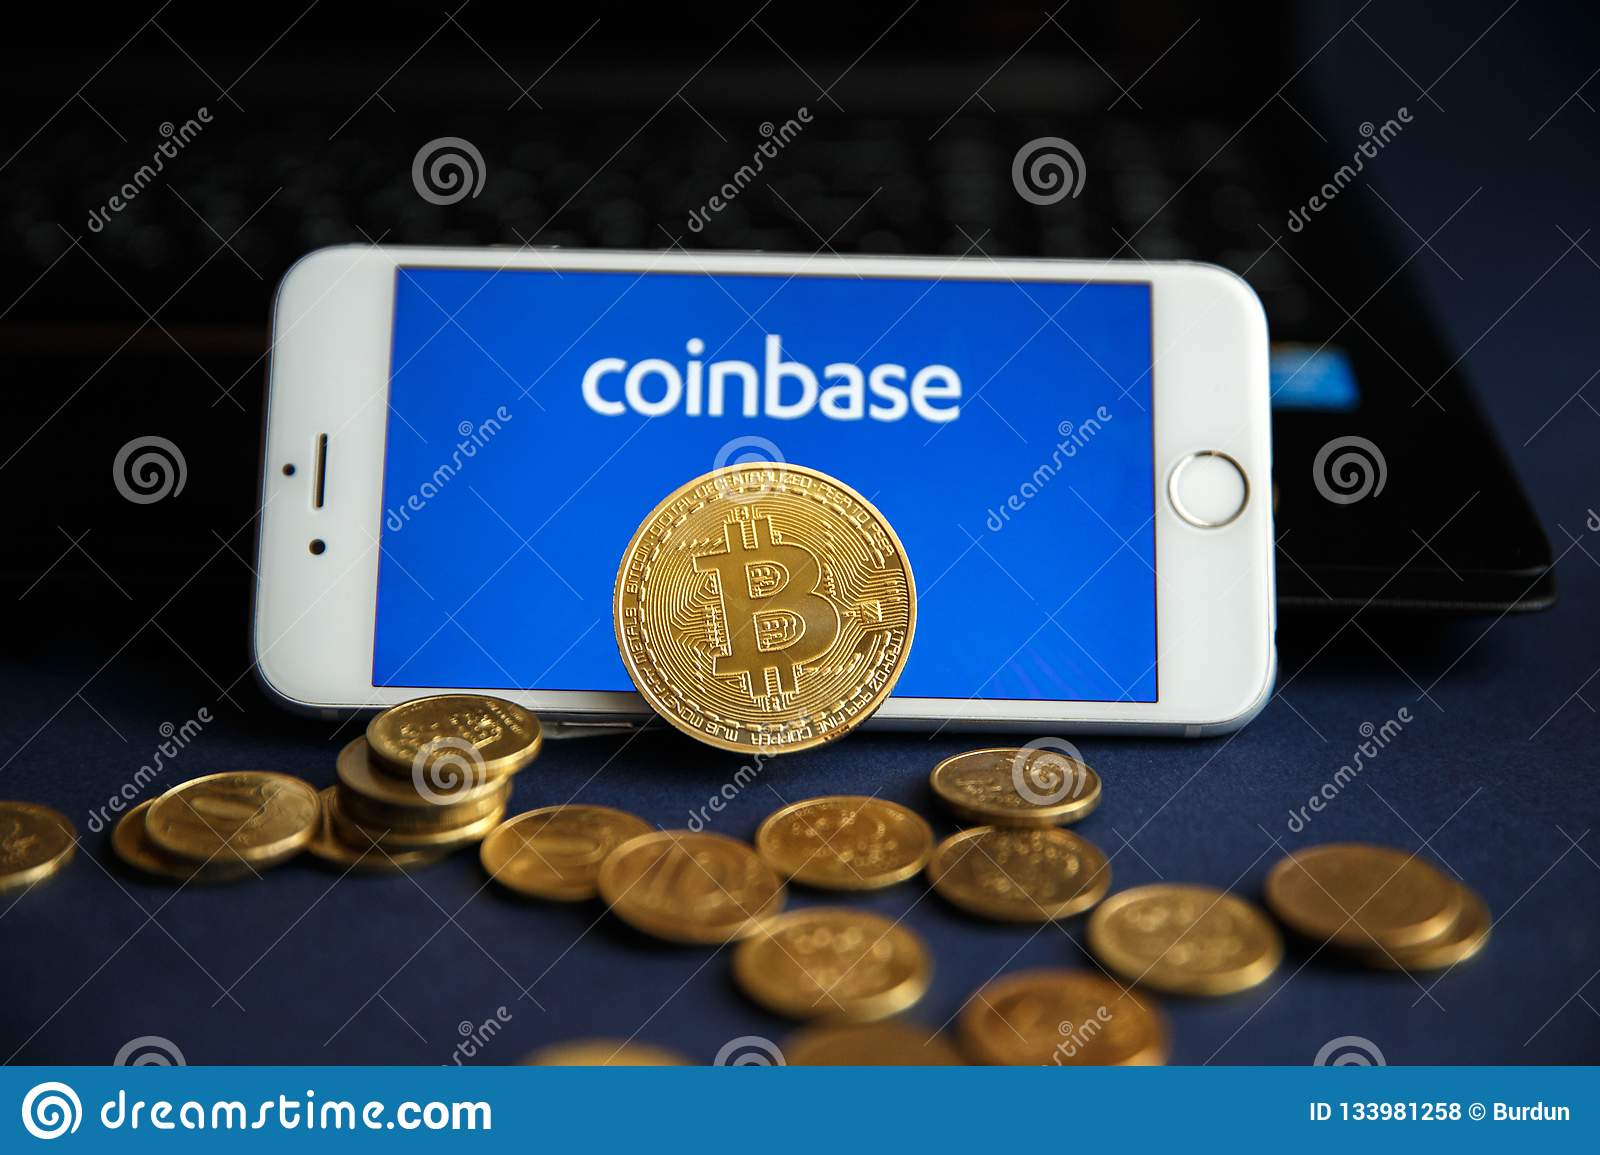 Tula, Russia - August 28, 2018 Bitcoin BTC on stack of cryptocurrencies with Coinbase logo in background. The